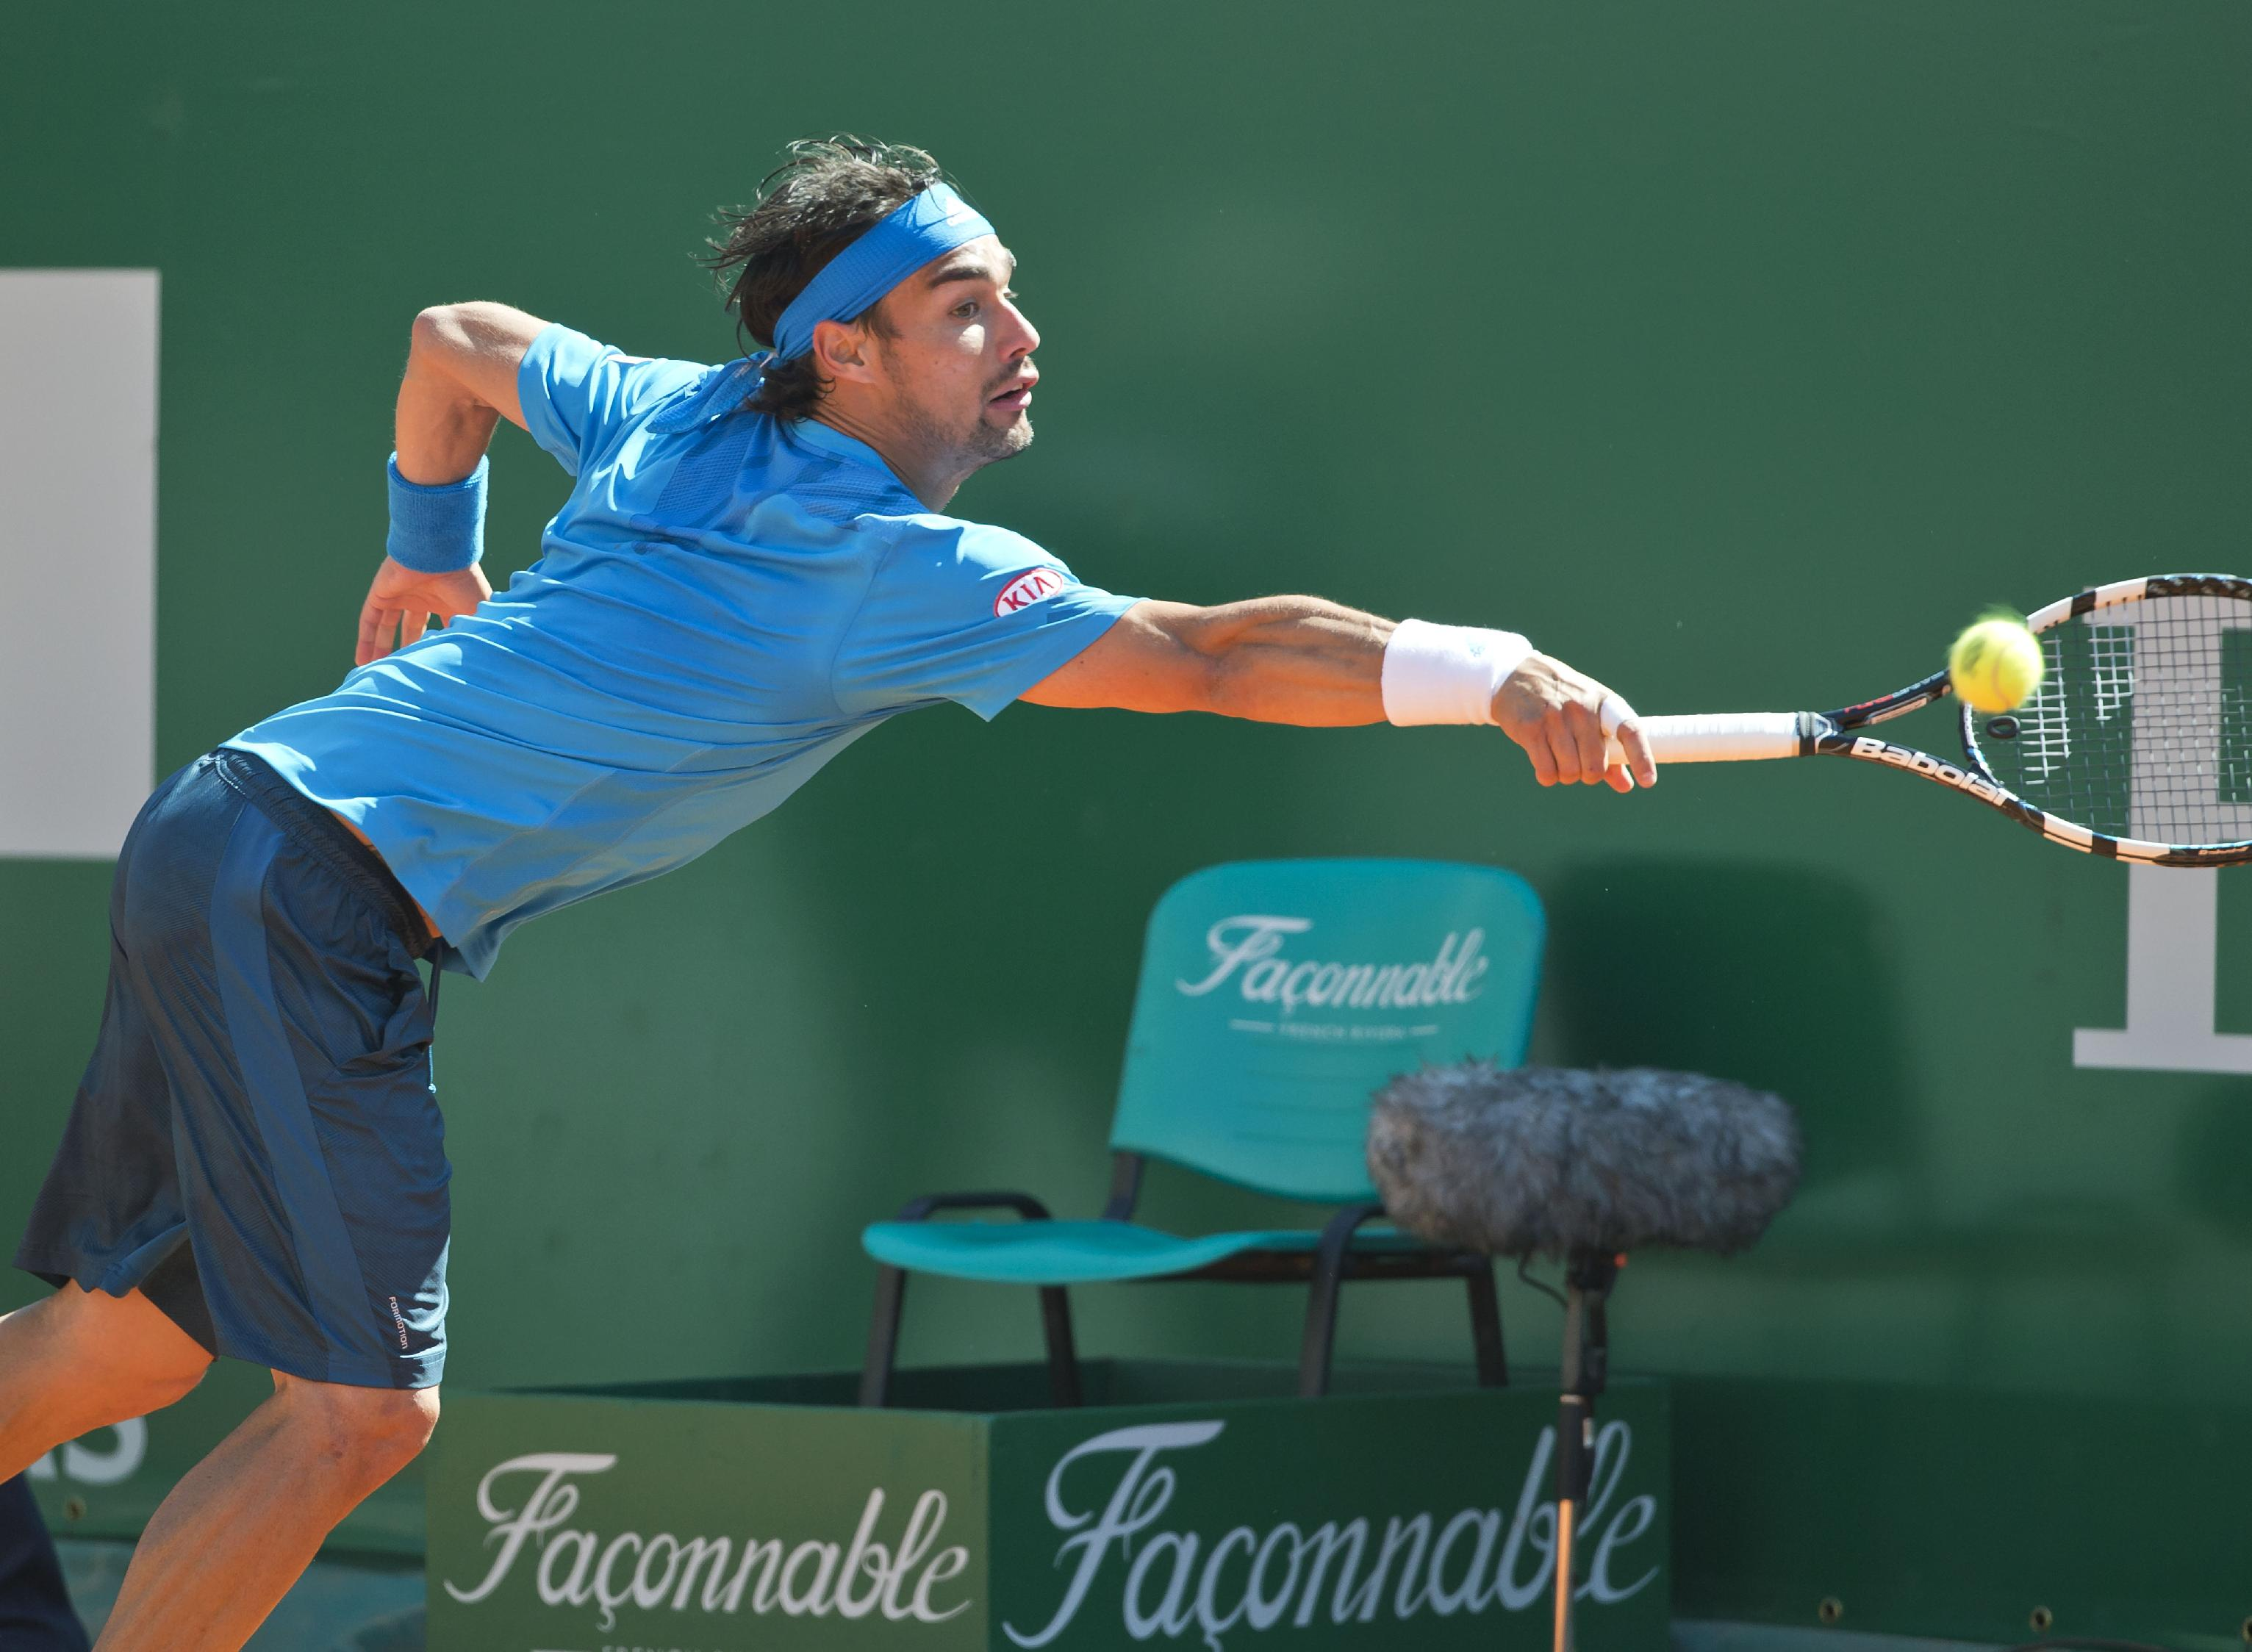 Fabio Fognini of Italy, returns the ball to Jo-Wilfried Tsonga of France during their third round match of the Monte Carlo Tennis Masters tournament in Monaco, Thursday, April 17, 2014. Tsonga won 5-7 6-3 6-0